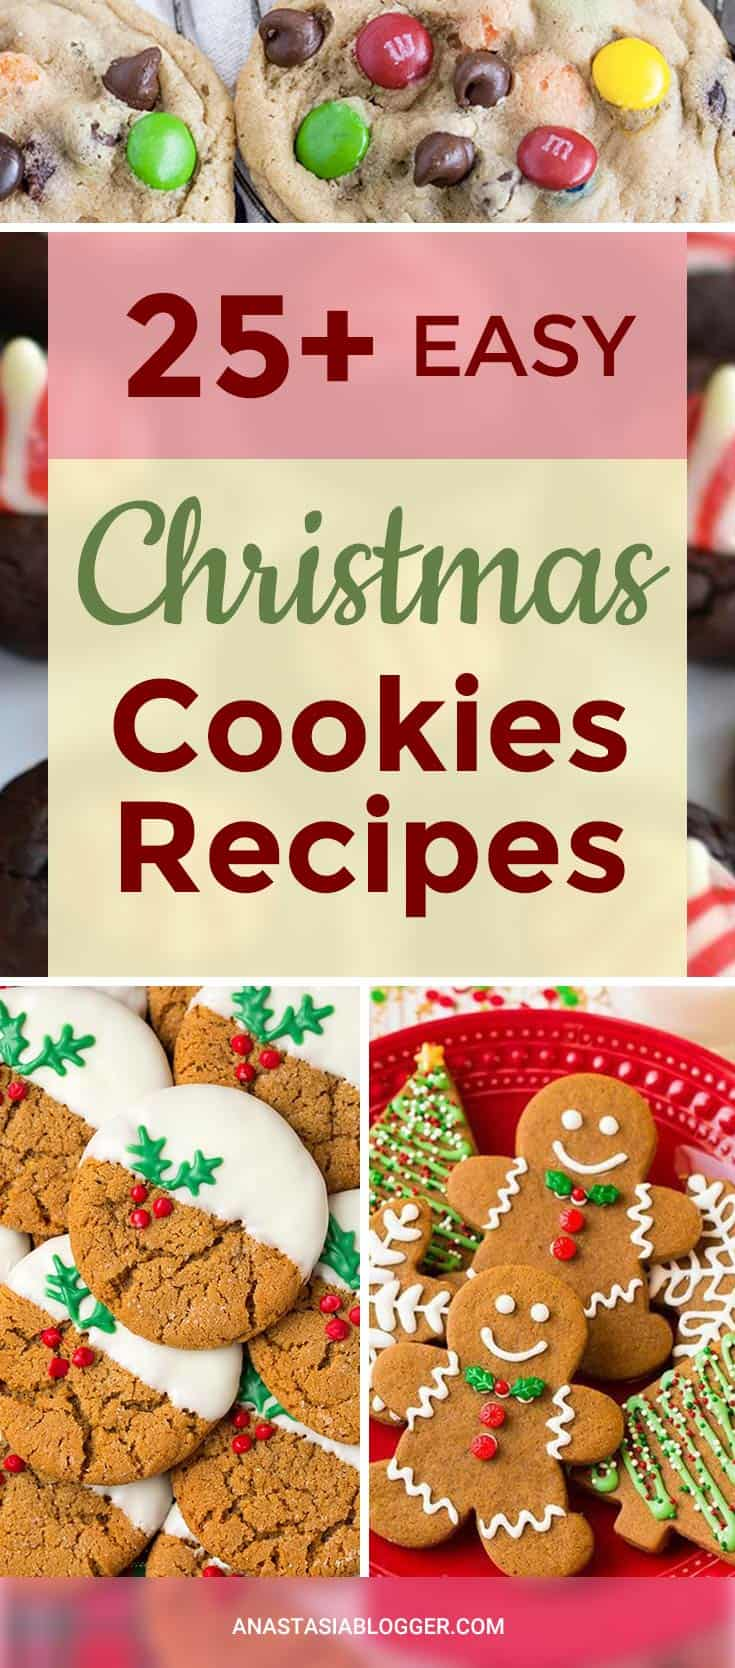 25+ Easy Christmas Cookies Recipes to try this year! Try best Christmas cookie ideas for exchange. Decorated, grinch, make them with your kids! #christmas #xmascookies #christmascookies #christmascookierecipes #christmascookieexchange